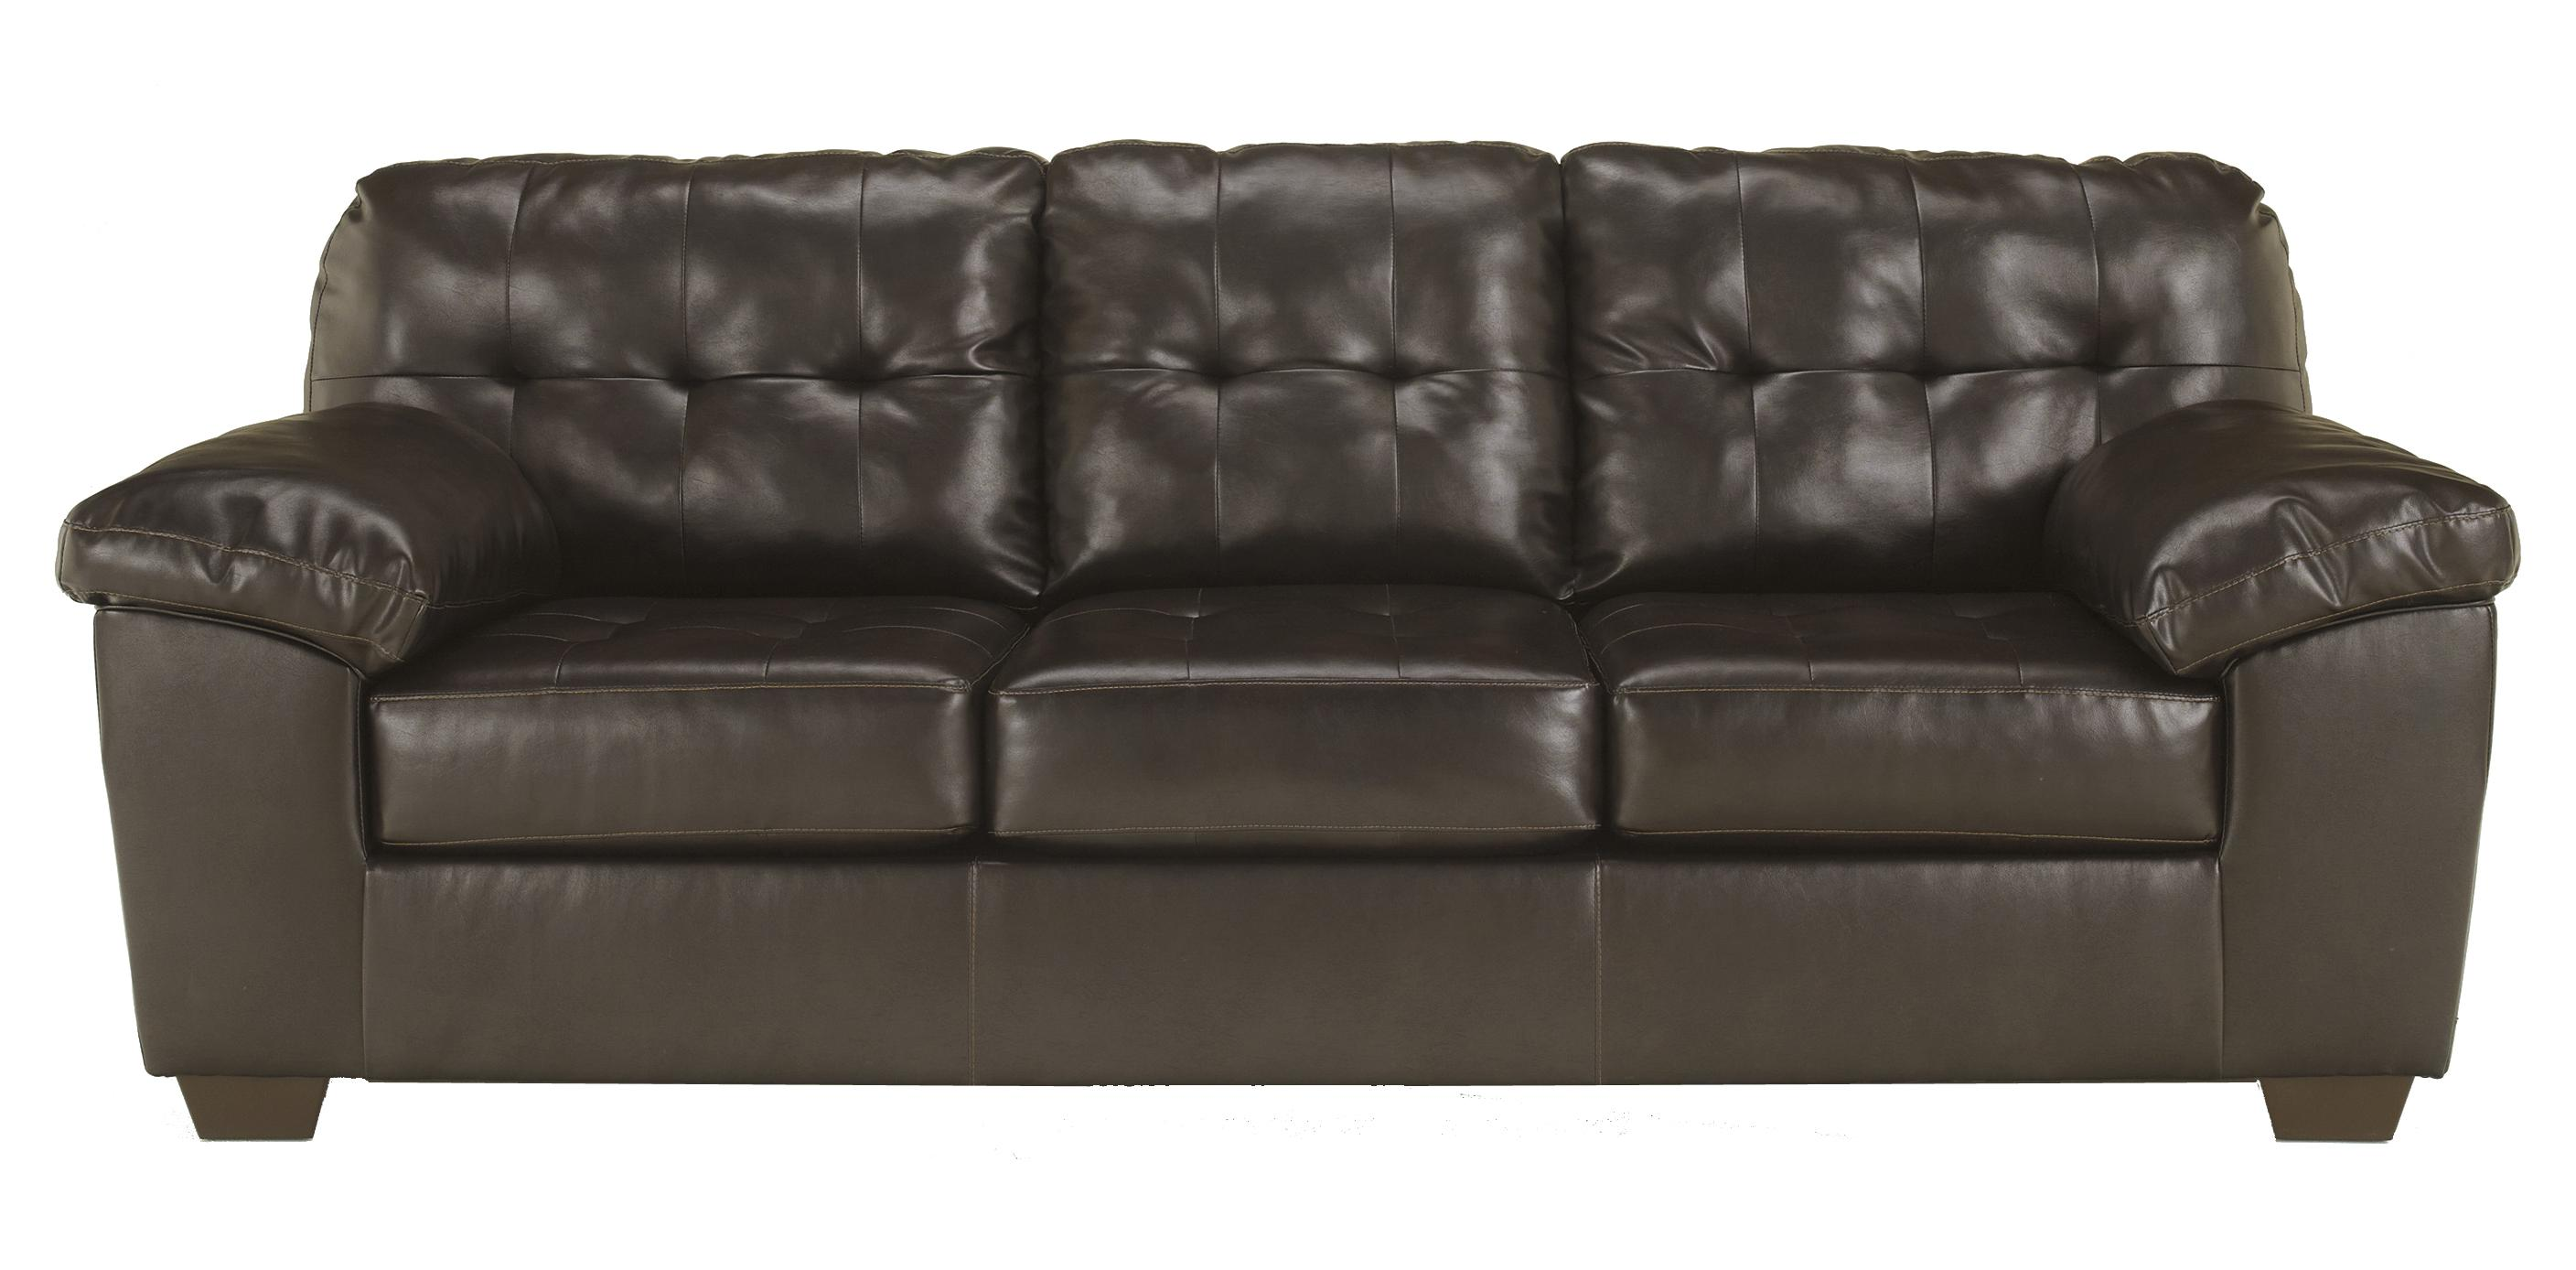 Signature Design by Ashley Alliston DuraBlend® - Chocolate Sofa - Item Number: 2010138